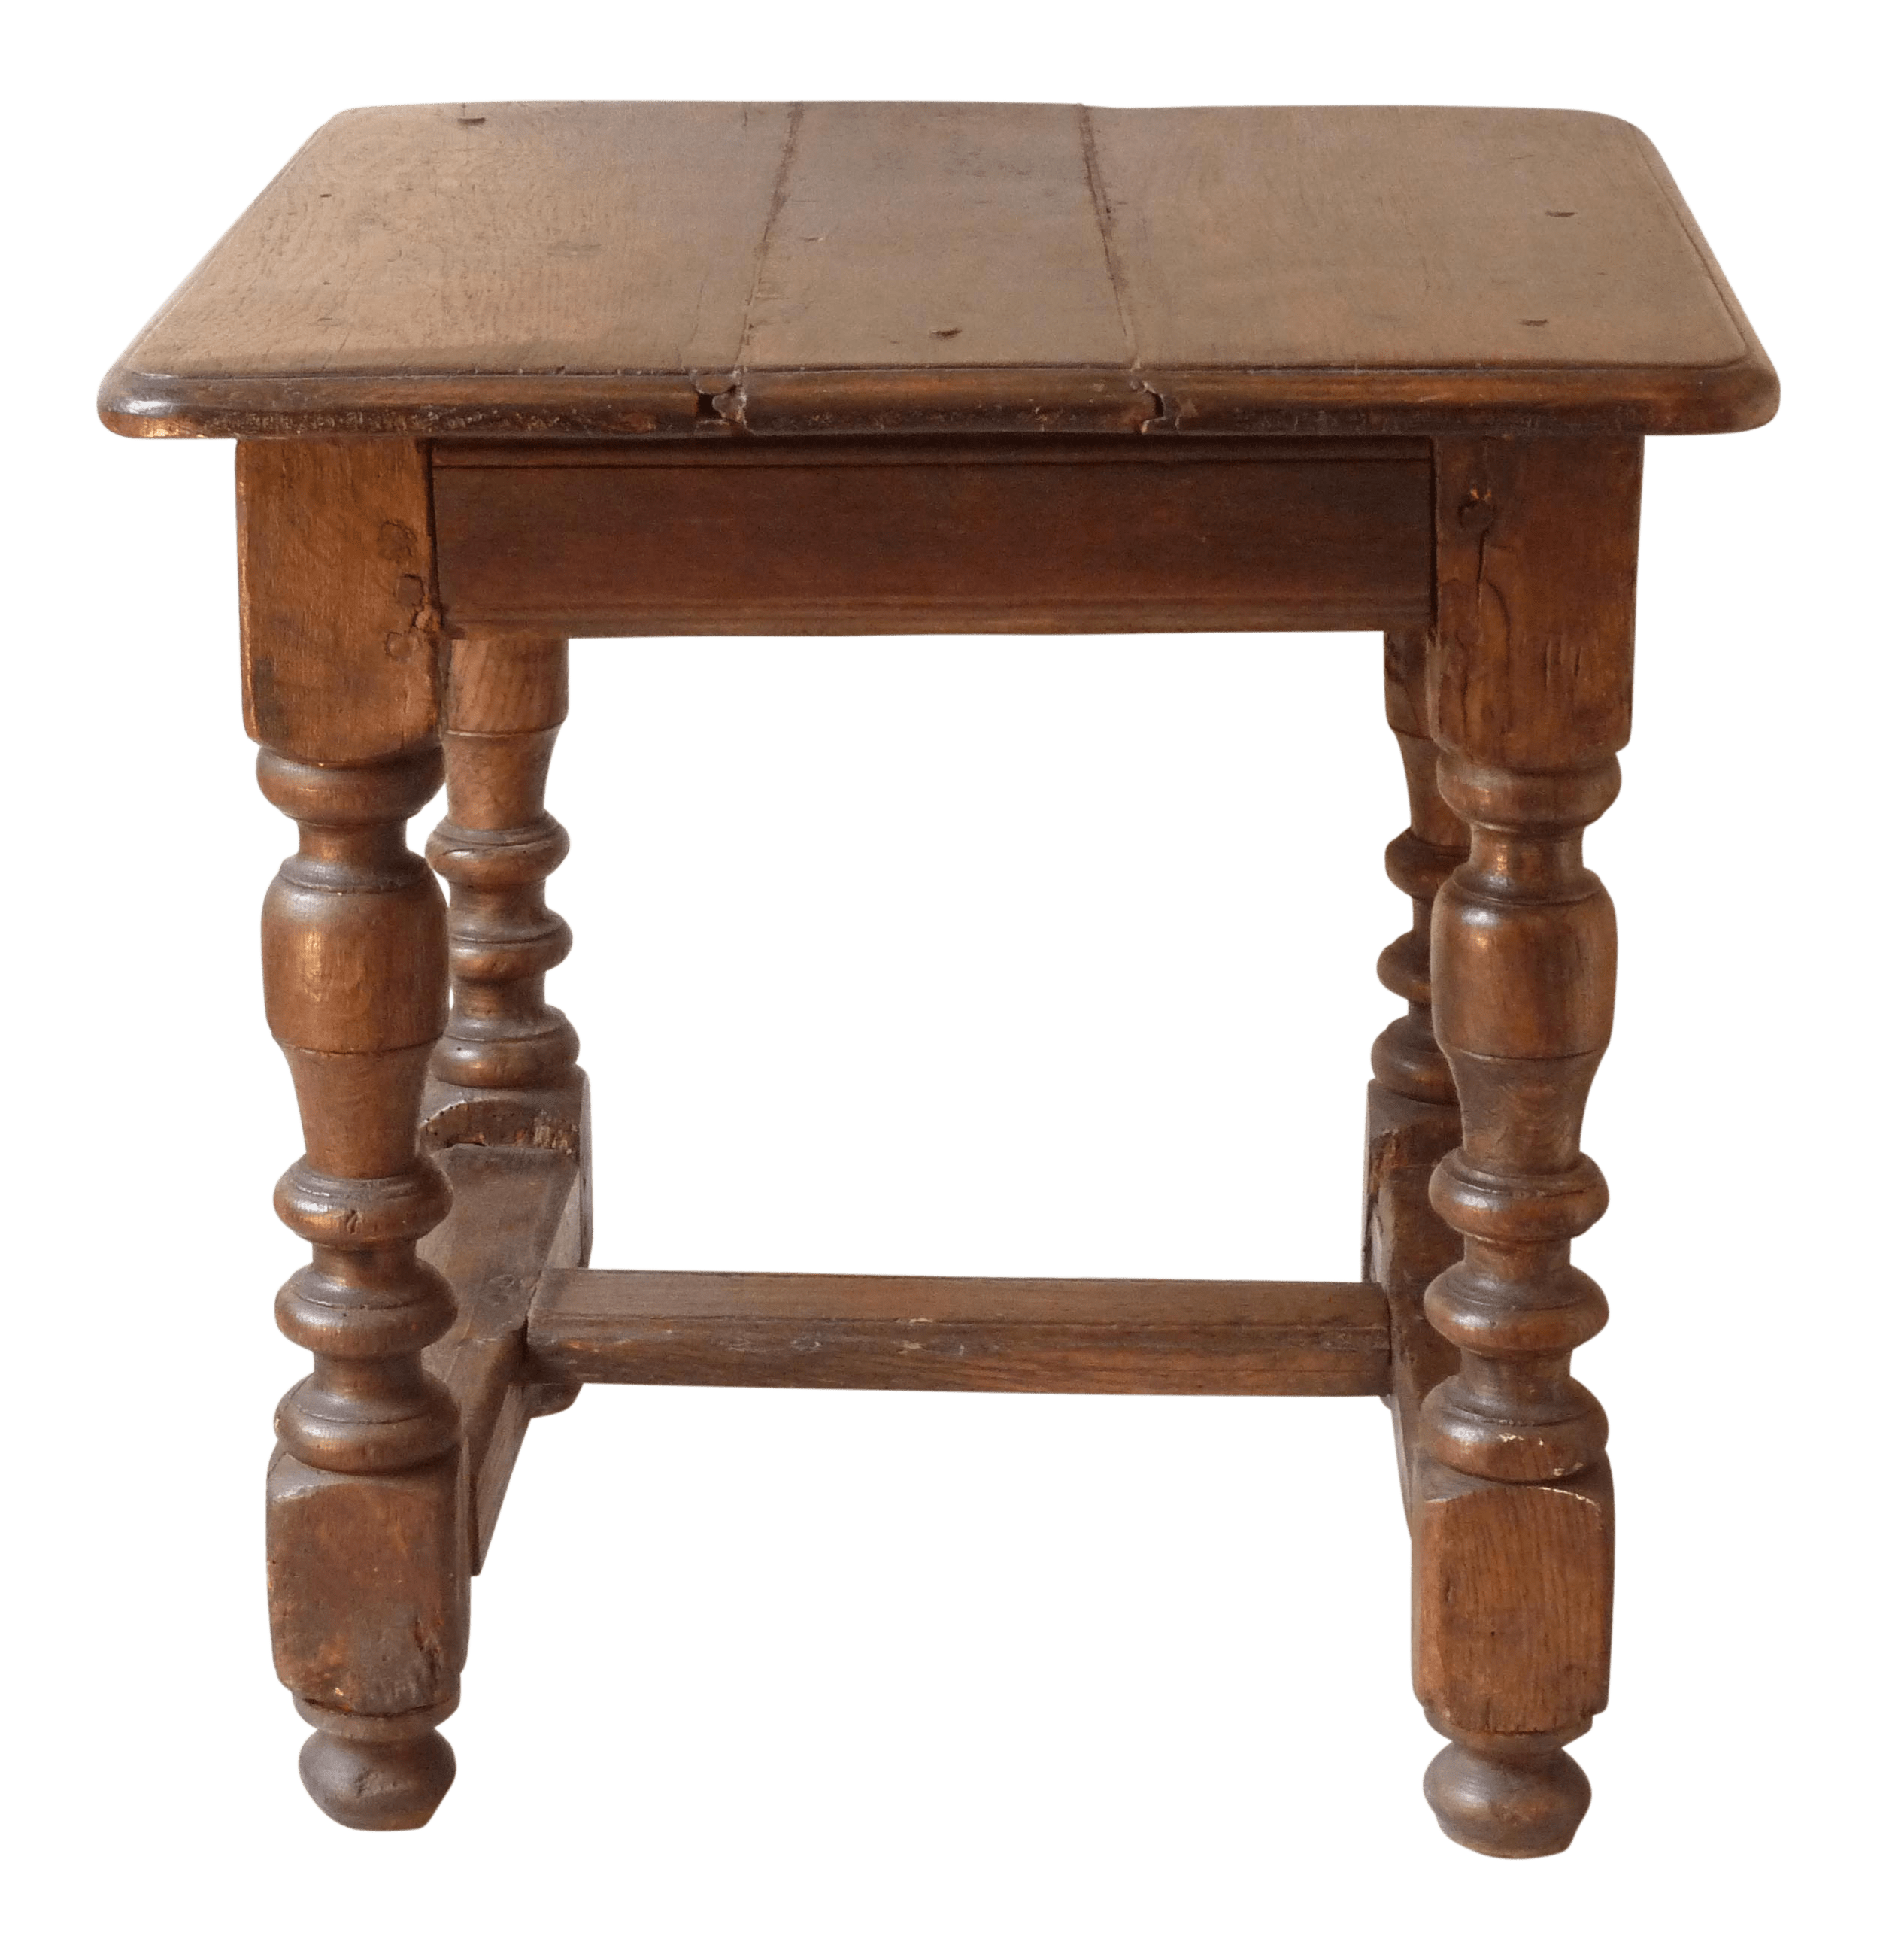 Smalle Tafel 18th Century Antique French Small Table Chairish